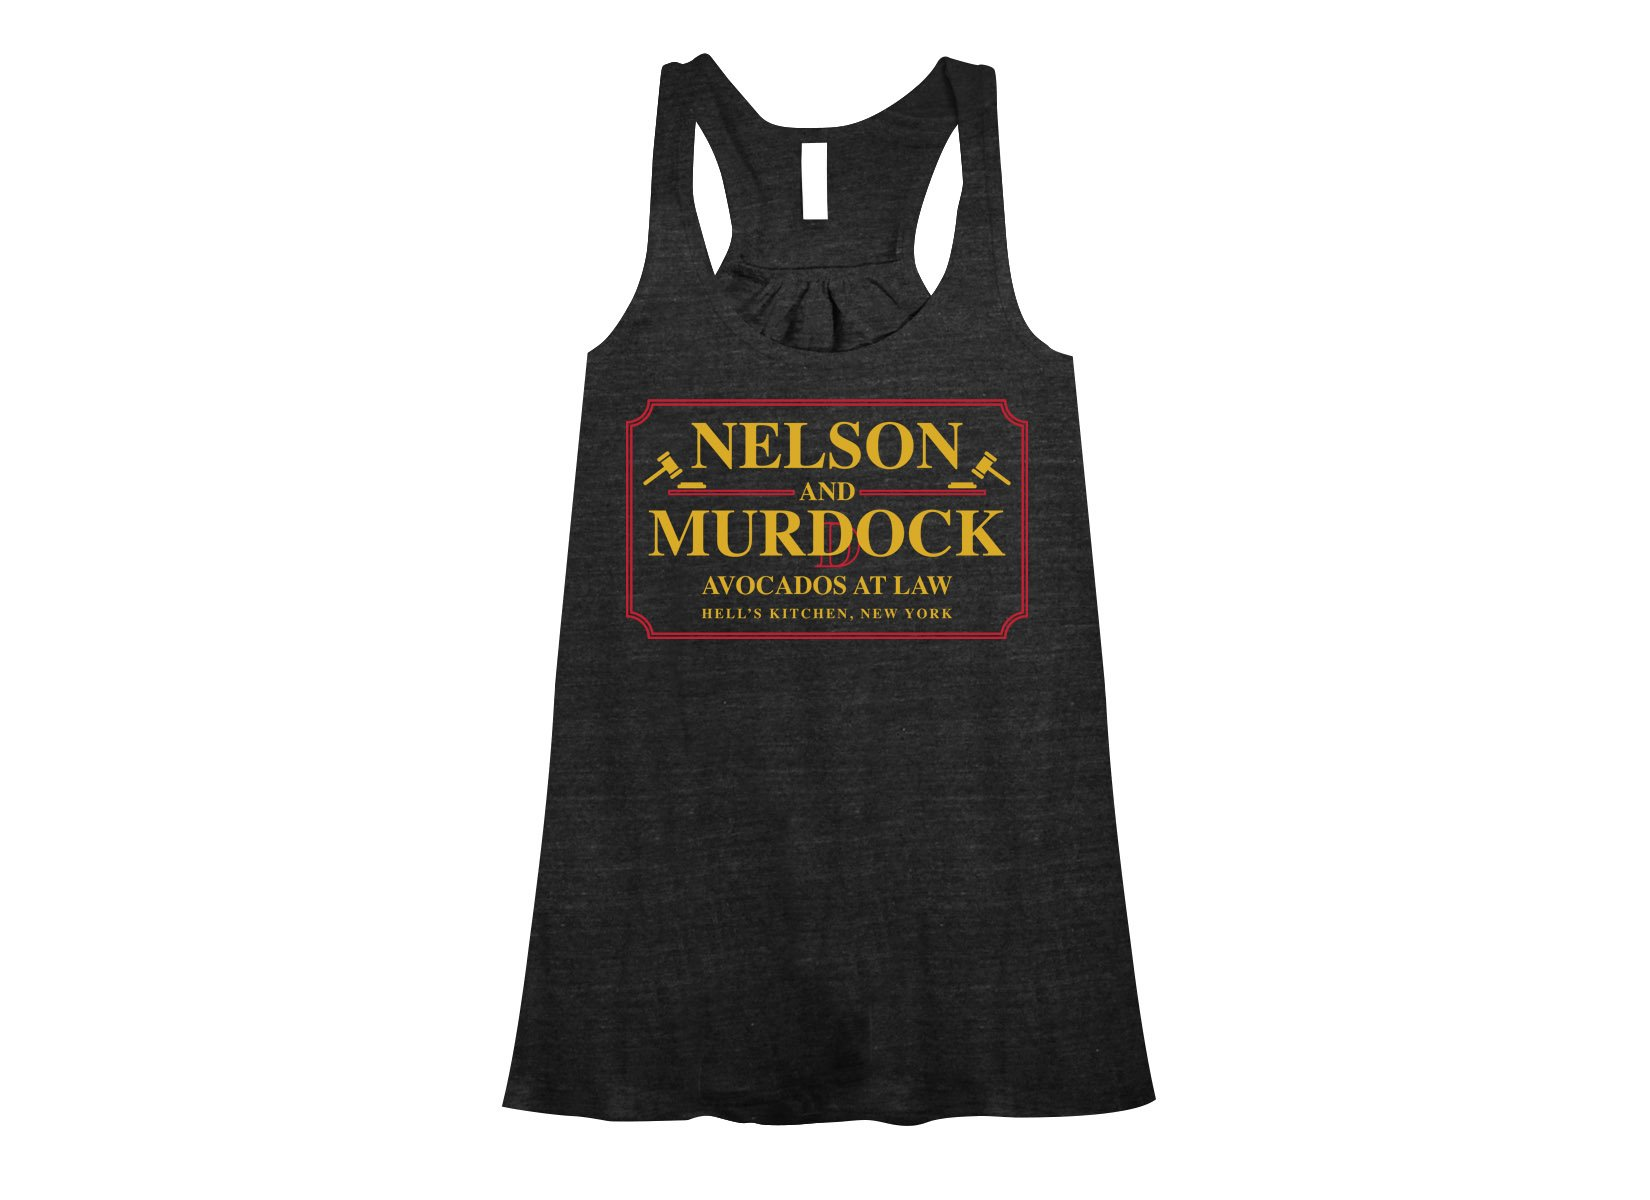 Nelson And Murdock on Womens Tanks T-Shirt